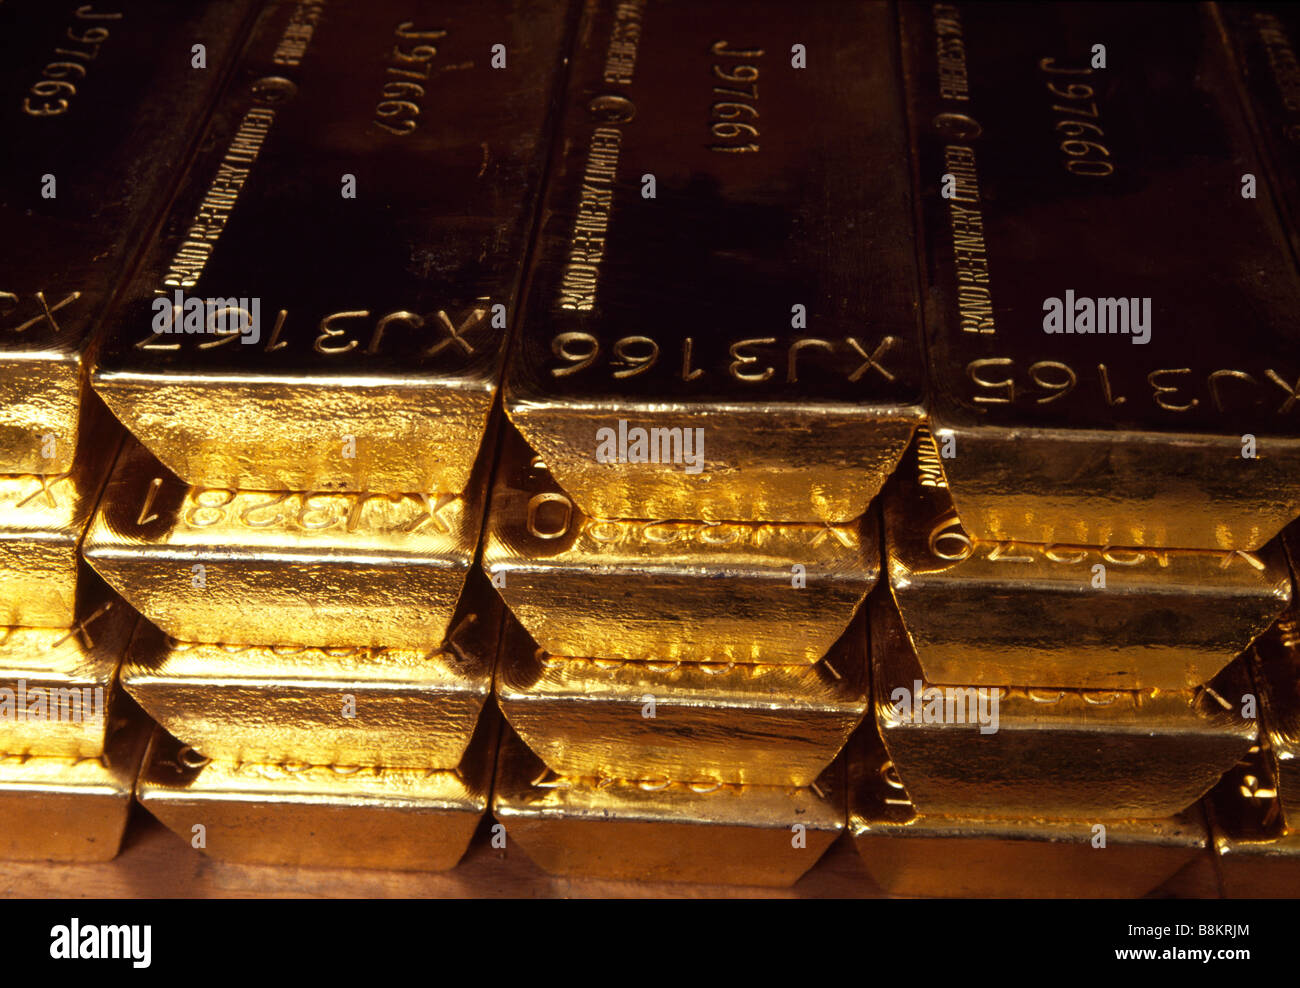 The Bank of England underground Gold Vaults in London Stacks of Gold Bars are arranged on storage shelves - Stock Image